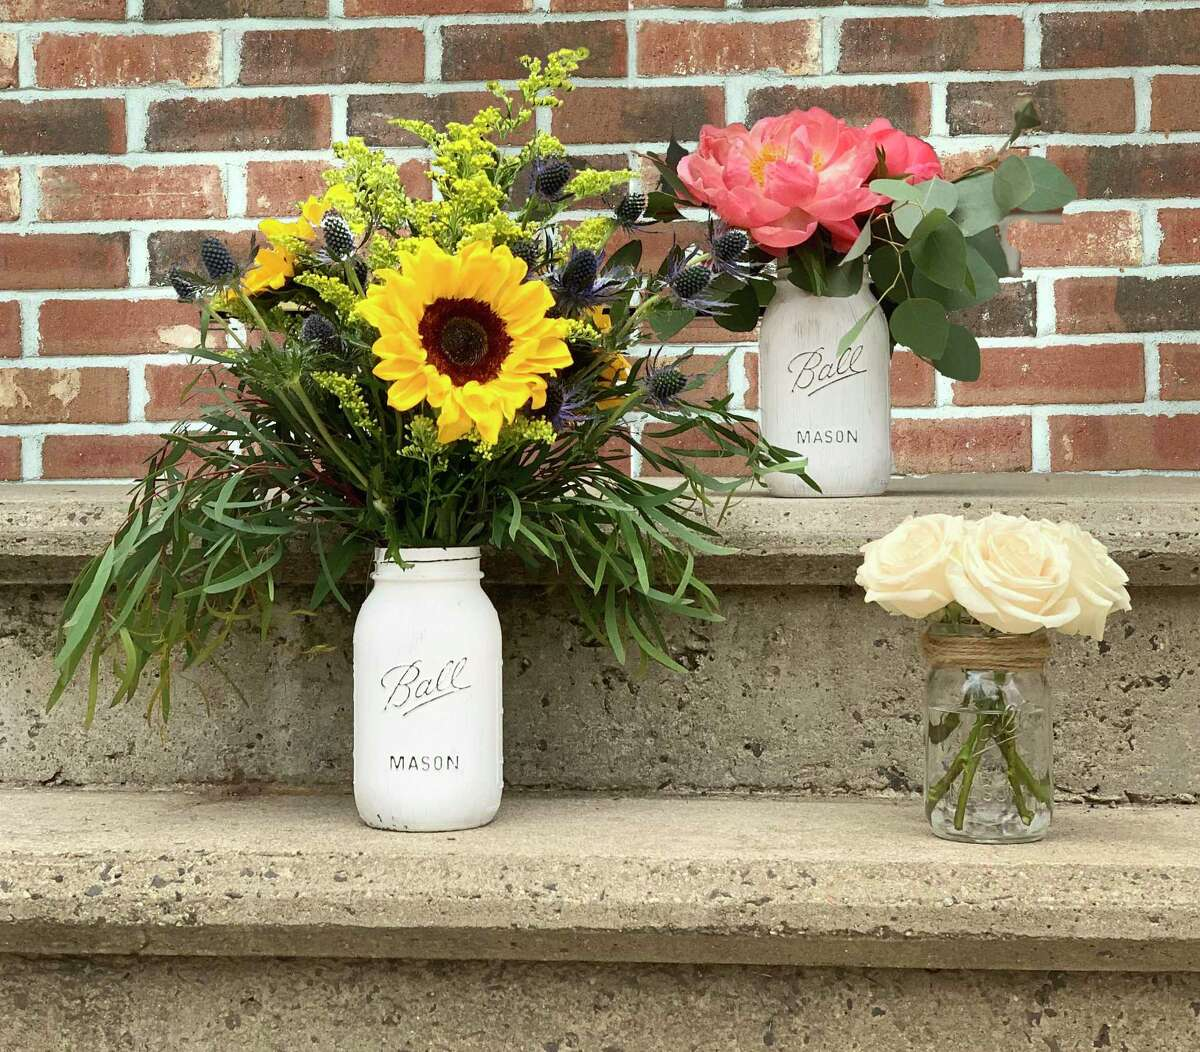 When the author's sister sees a Mason jar it reminds her of her son.